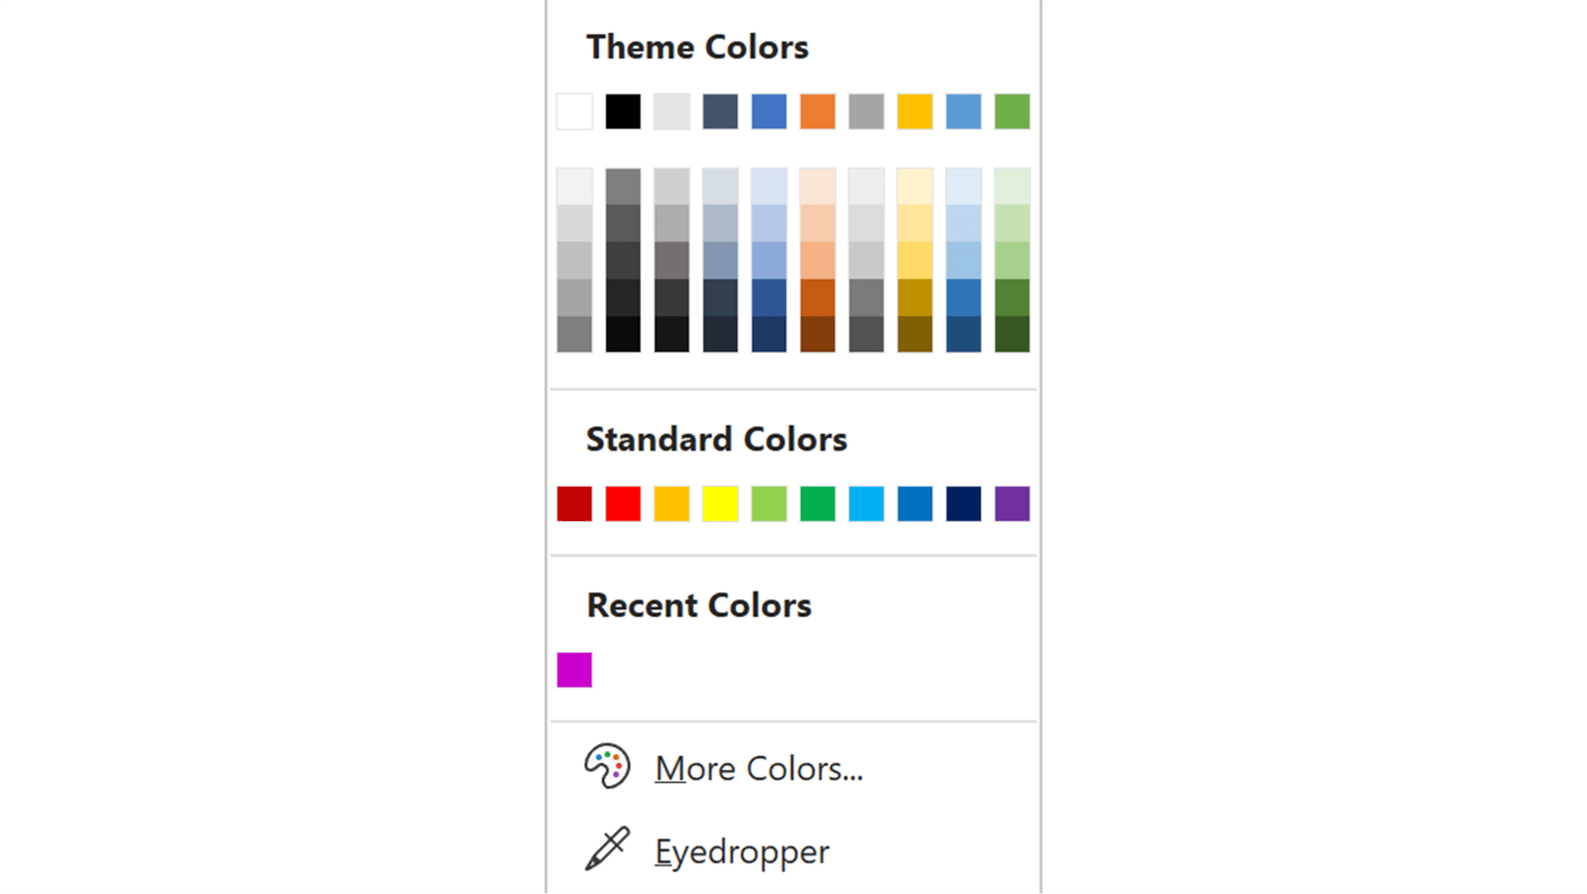 Screenshot of the Theme Colors panel in PowerPoint showing the Recent Colors section